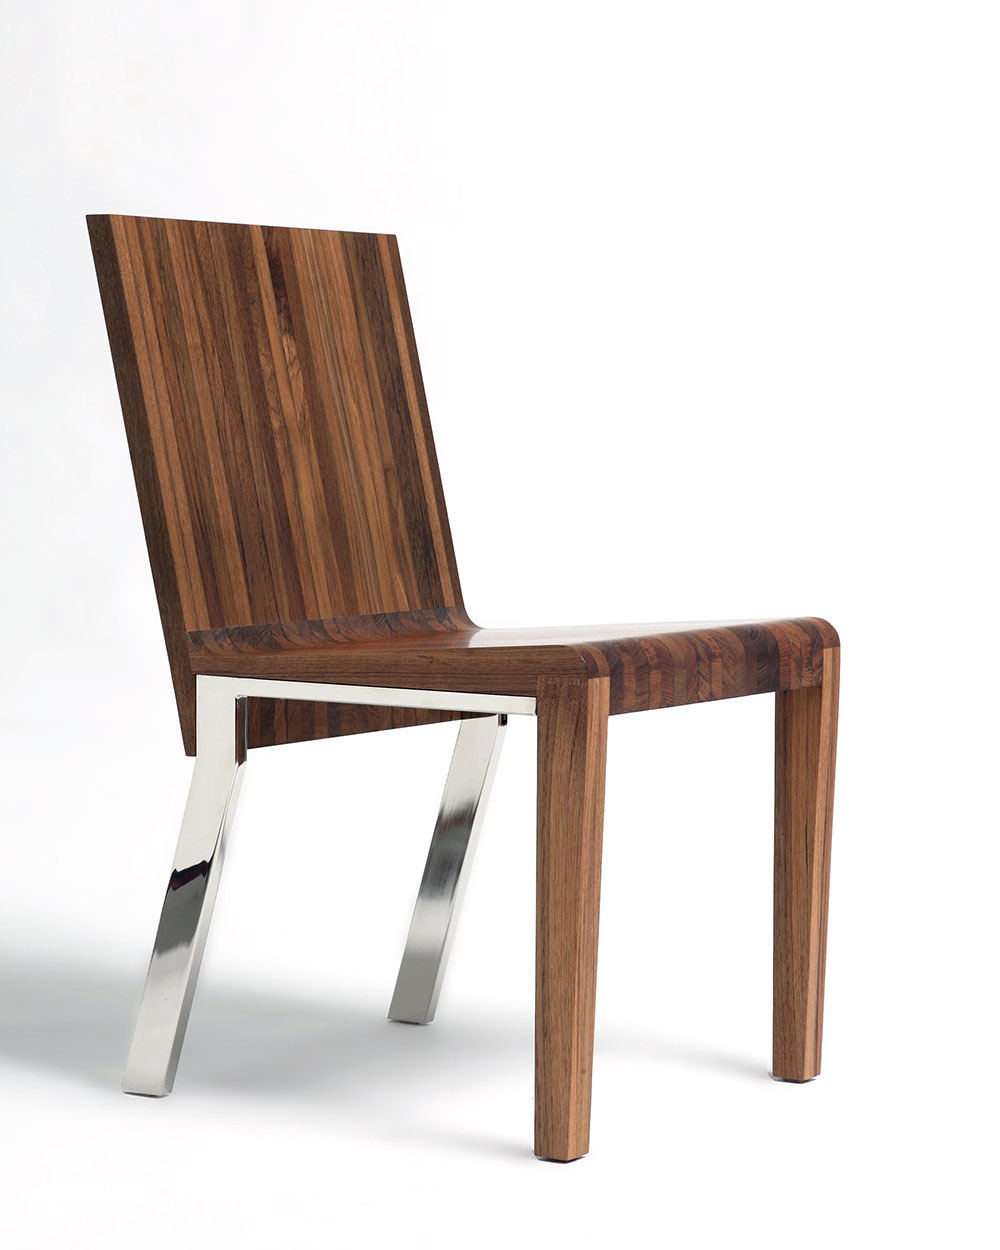 Custom chair shown at angle, metal legs, wood.